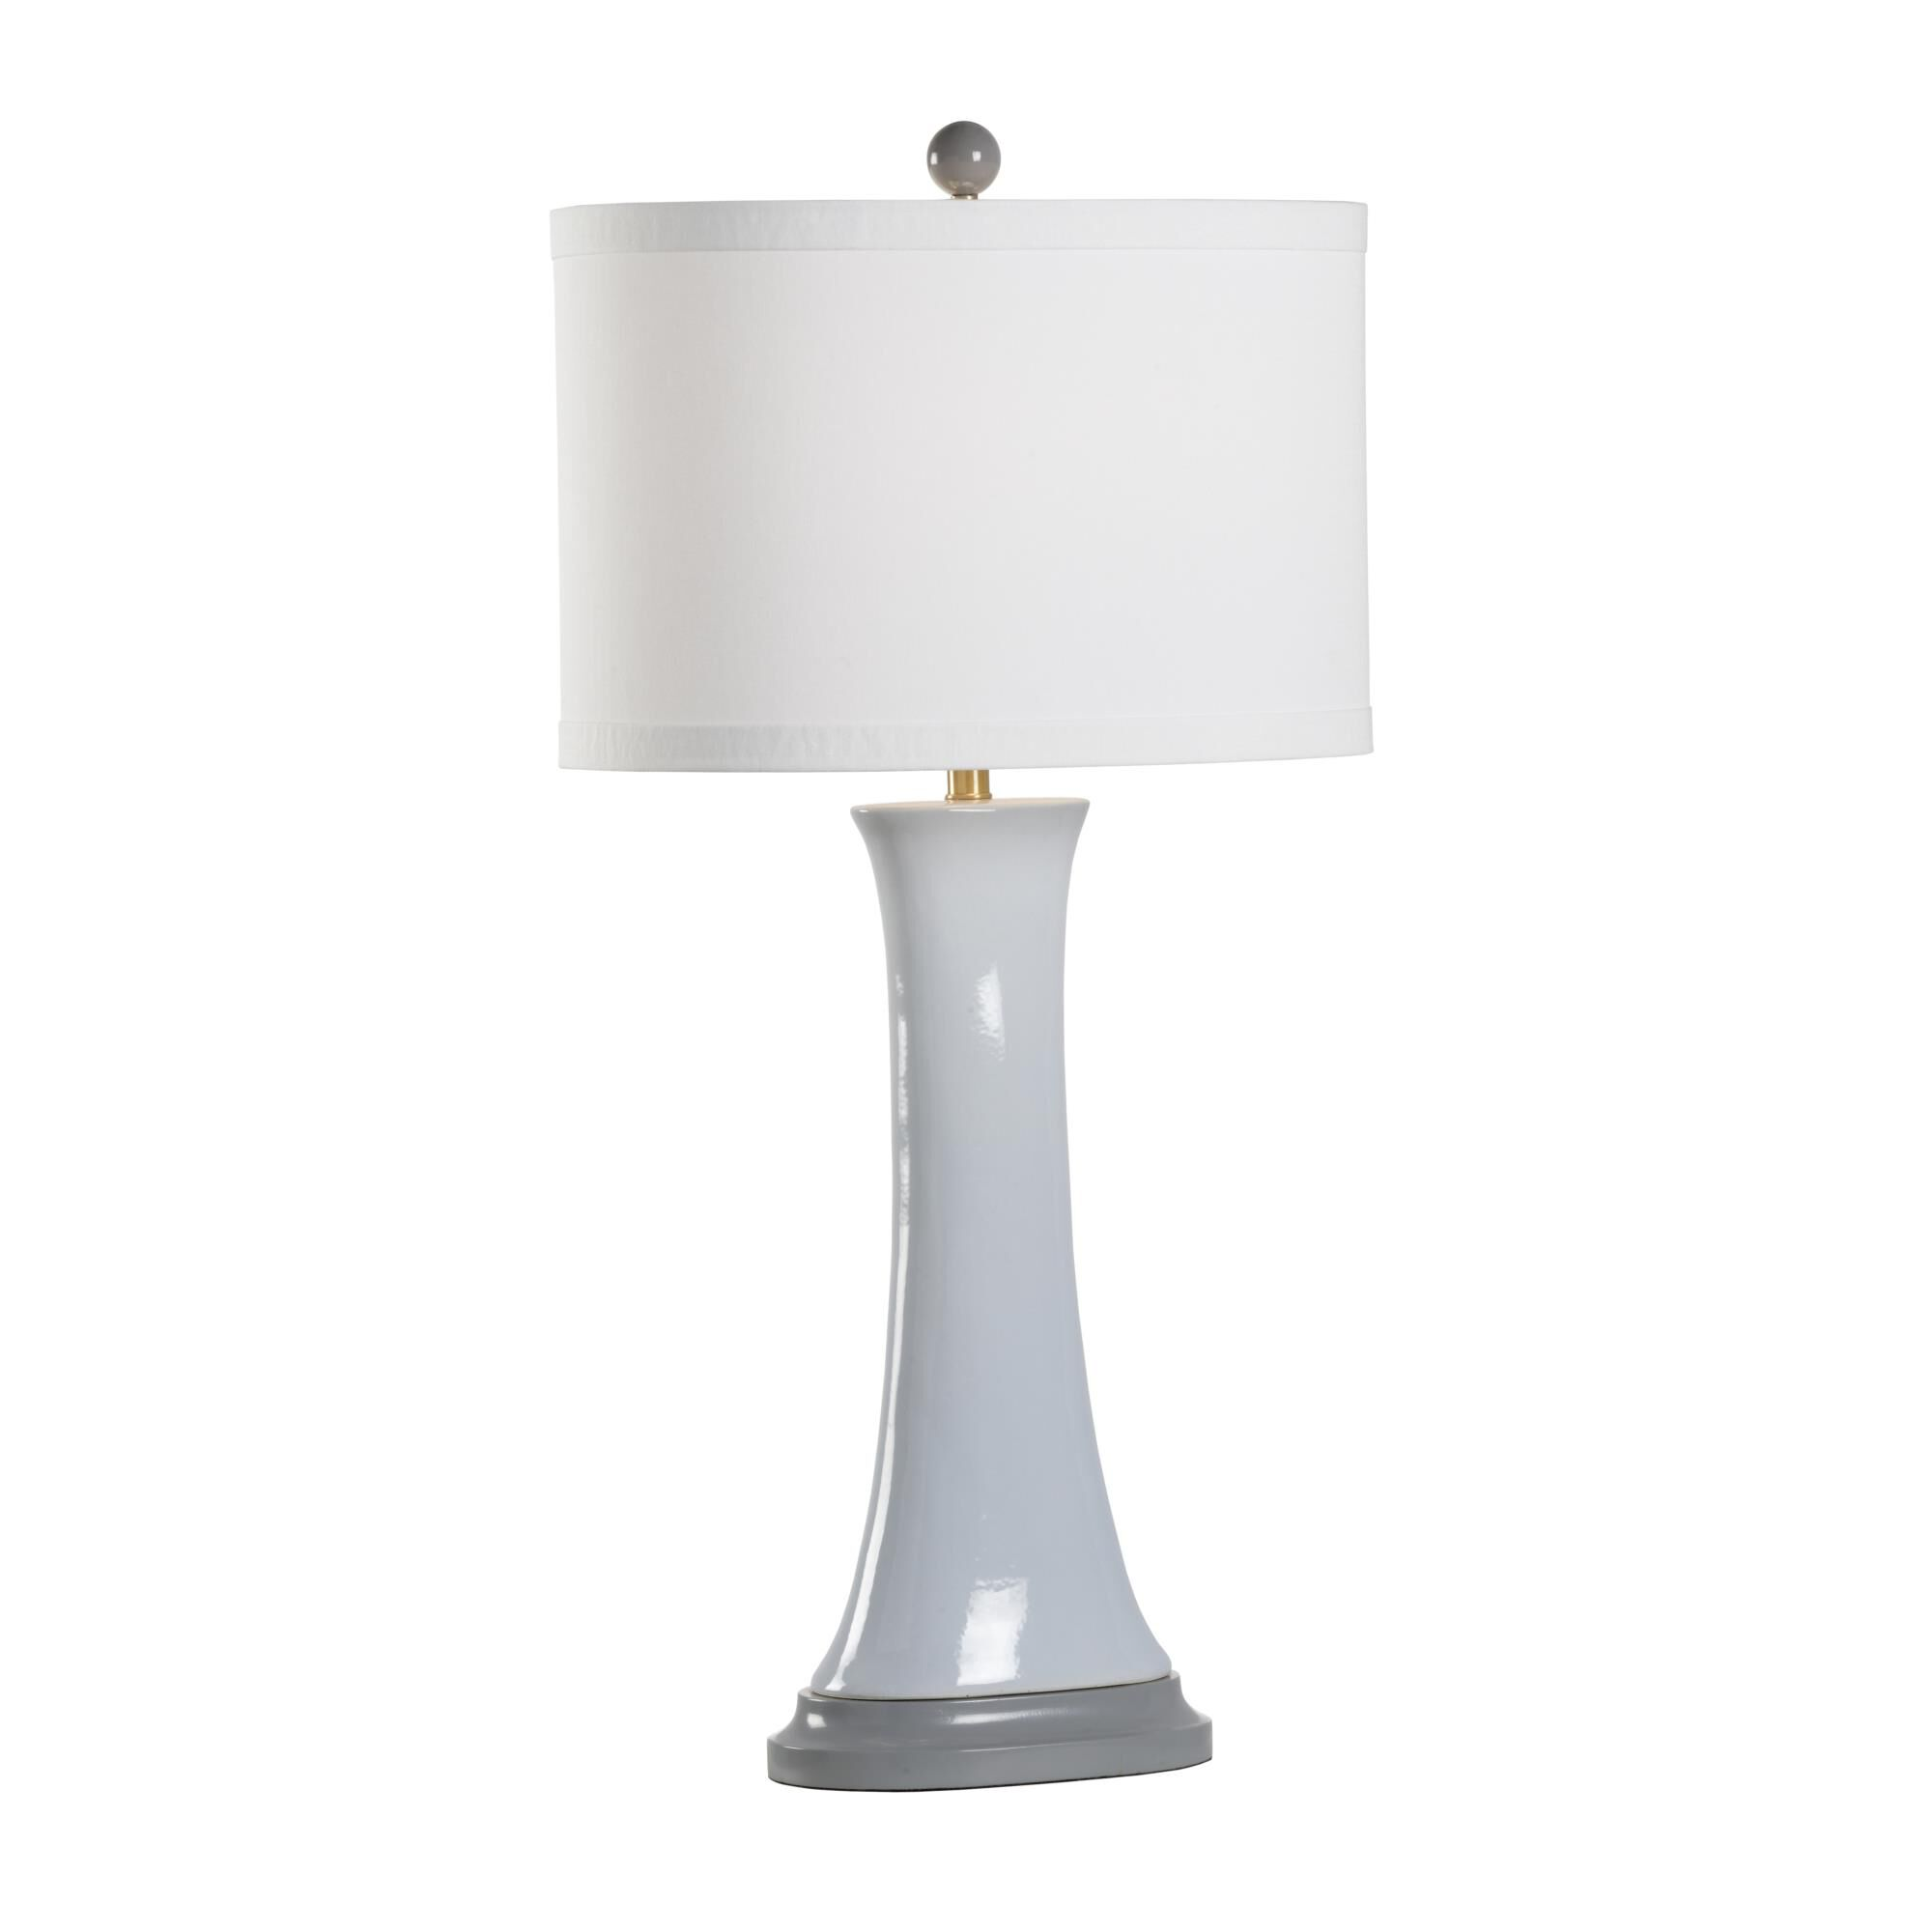 Chelsea House Hopper Table Lamp Hopper - 69501 Table Lamp